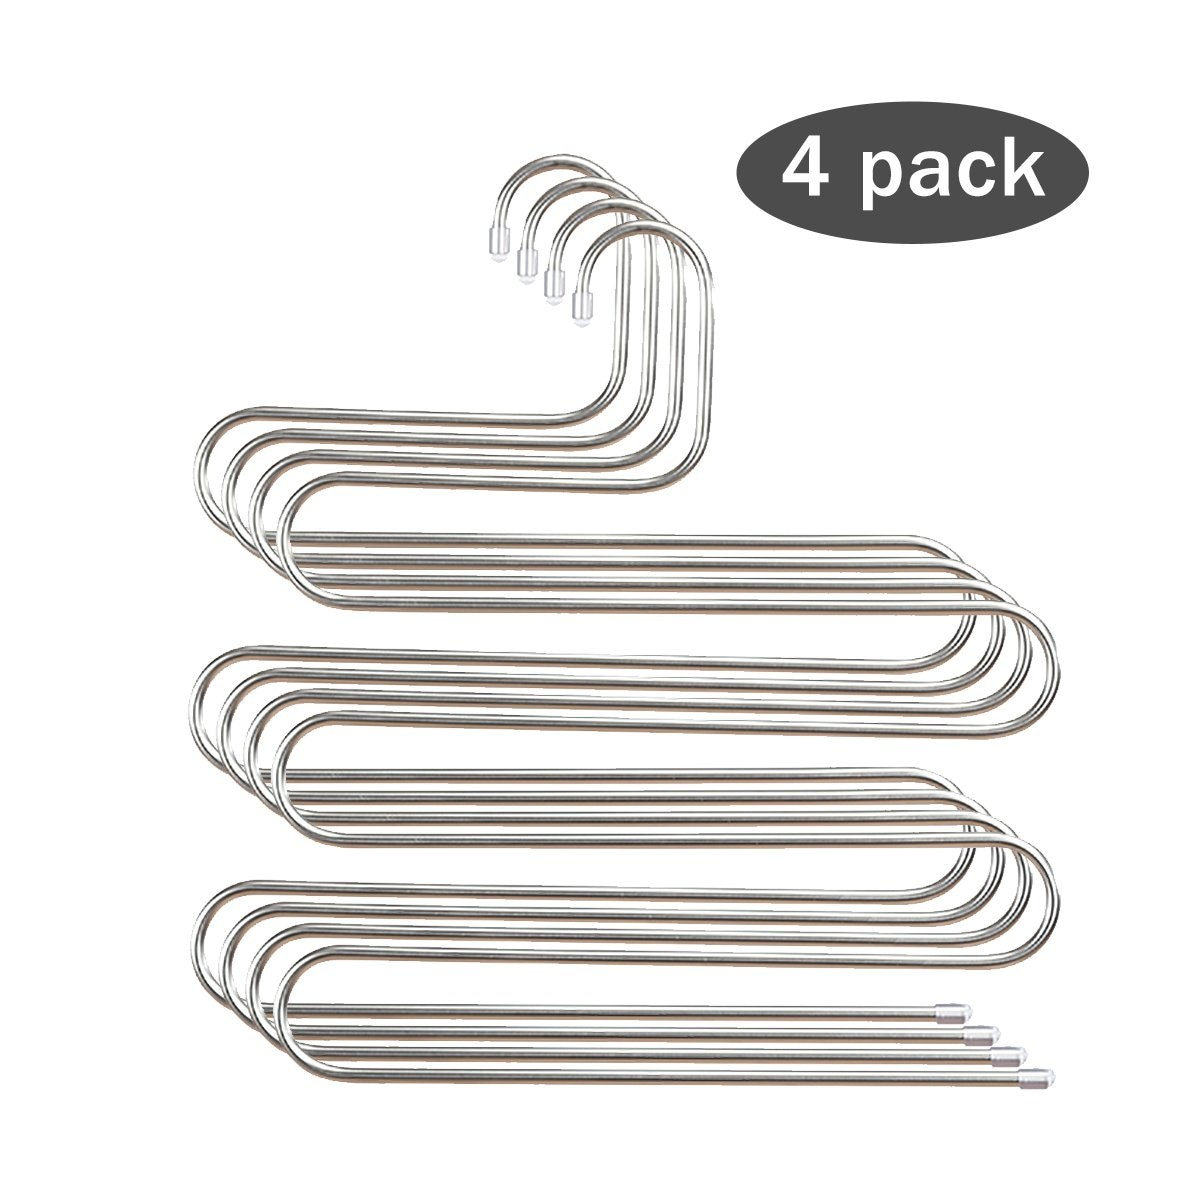 Star-Fly S-Type Hangers (4 Pack)